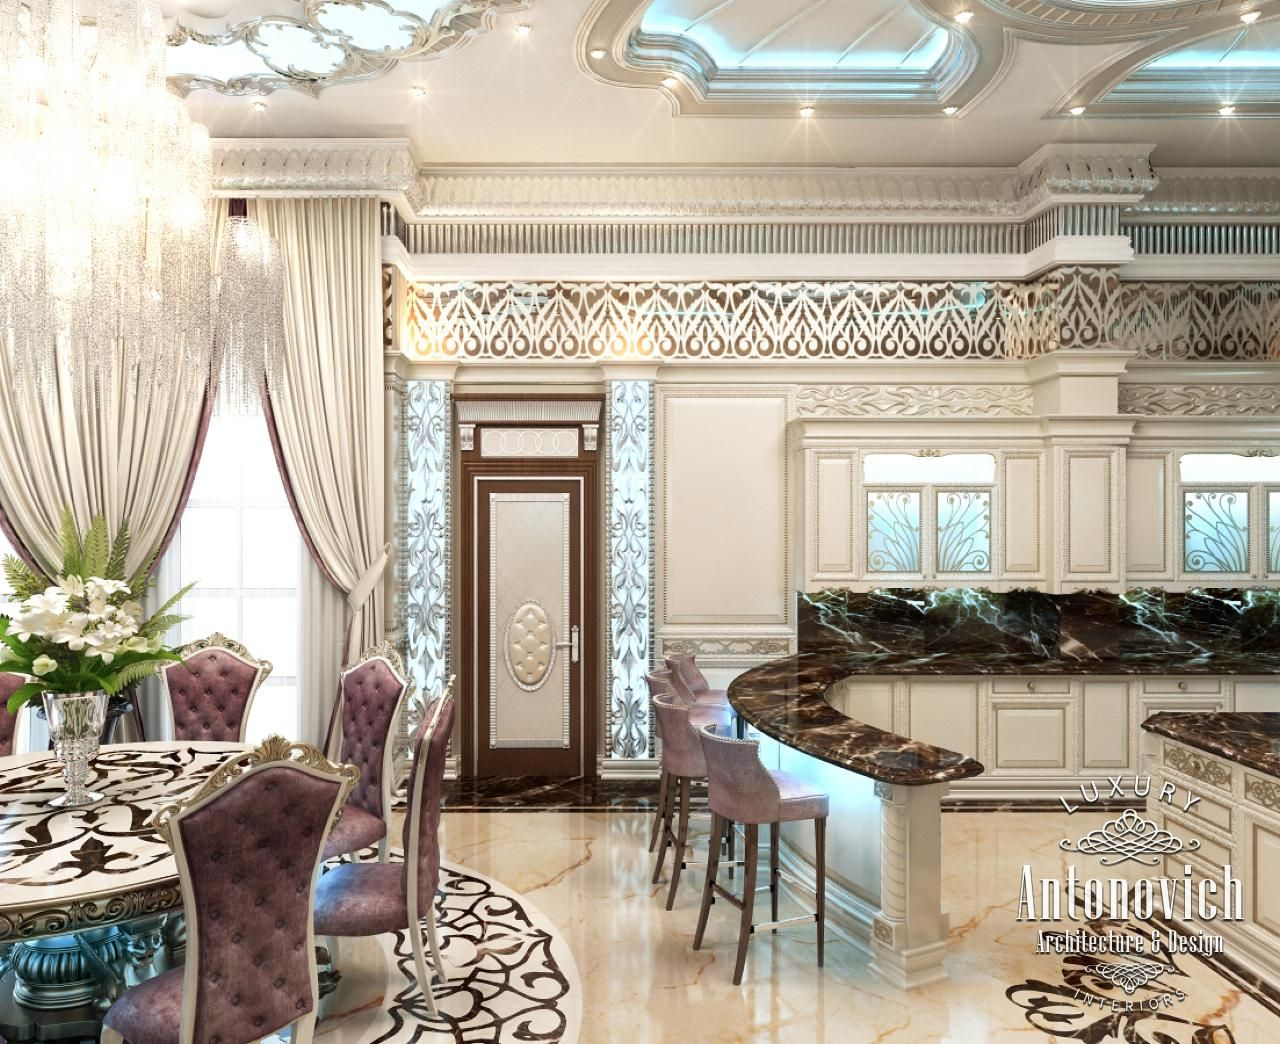 Kitchen Design In Dubai, Luxury Kitchen Abu Dhabi, Photo 4